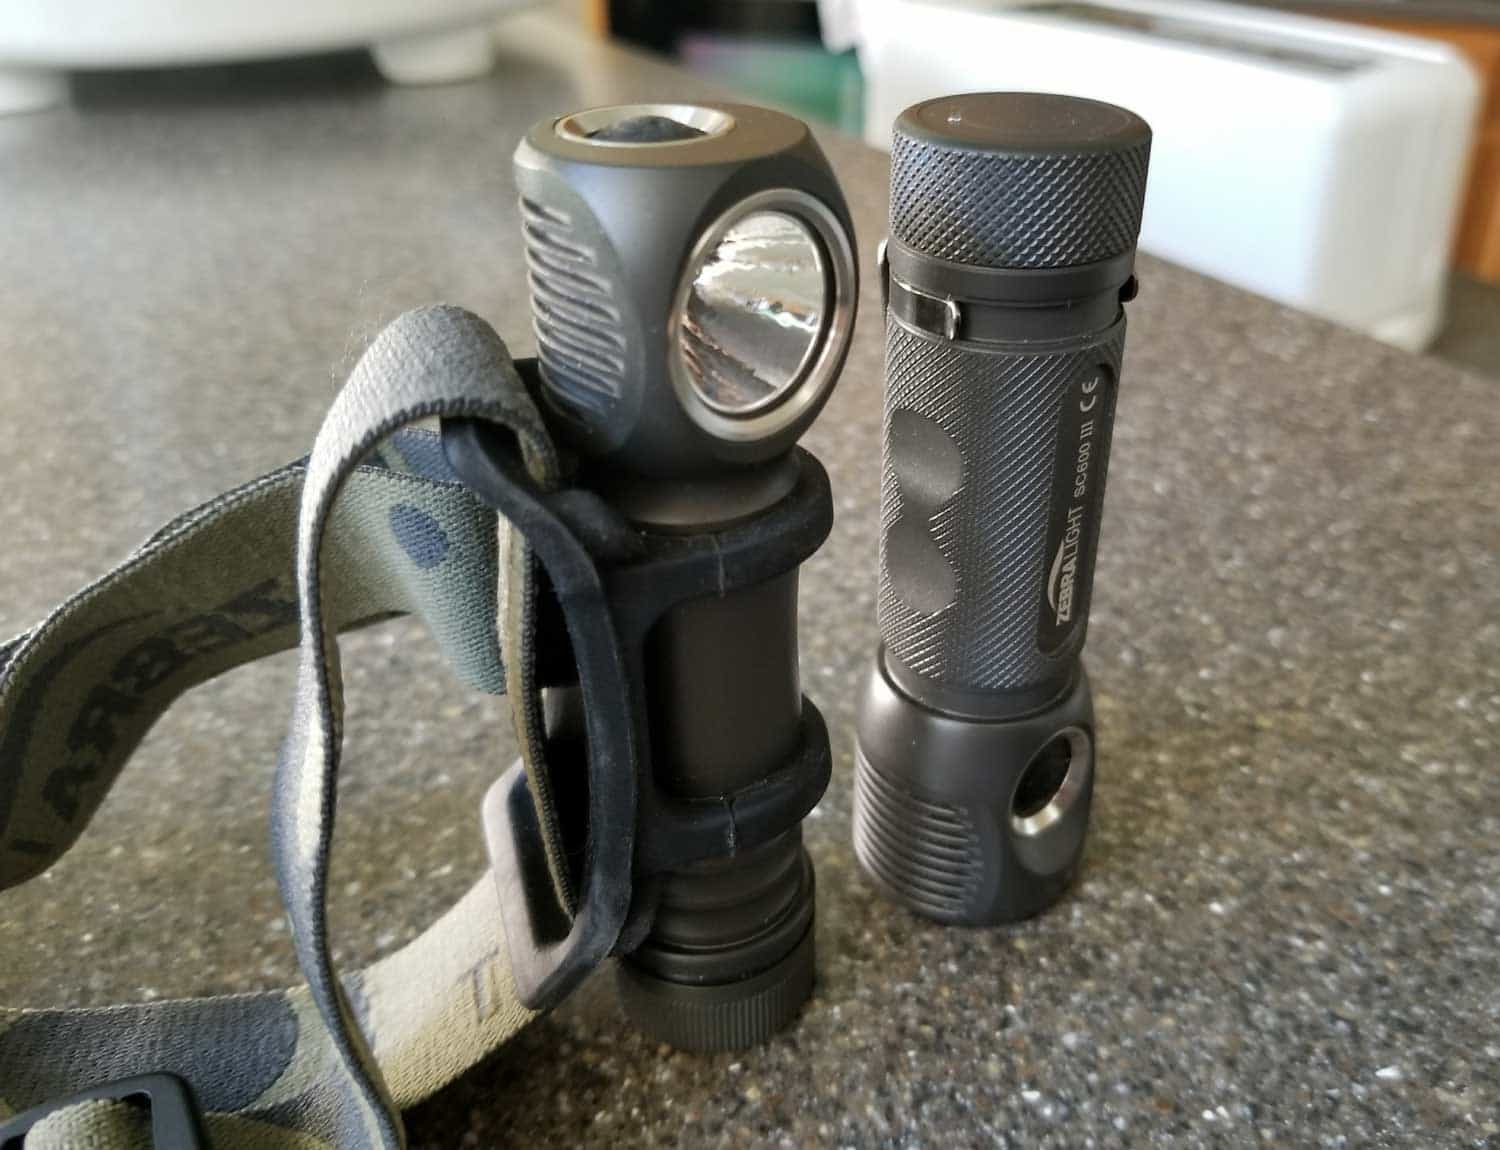 Product Recommendation: ZebraLight H600w and SC600